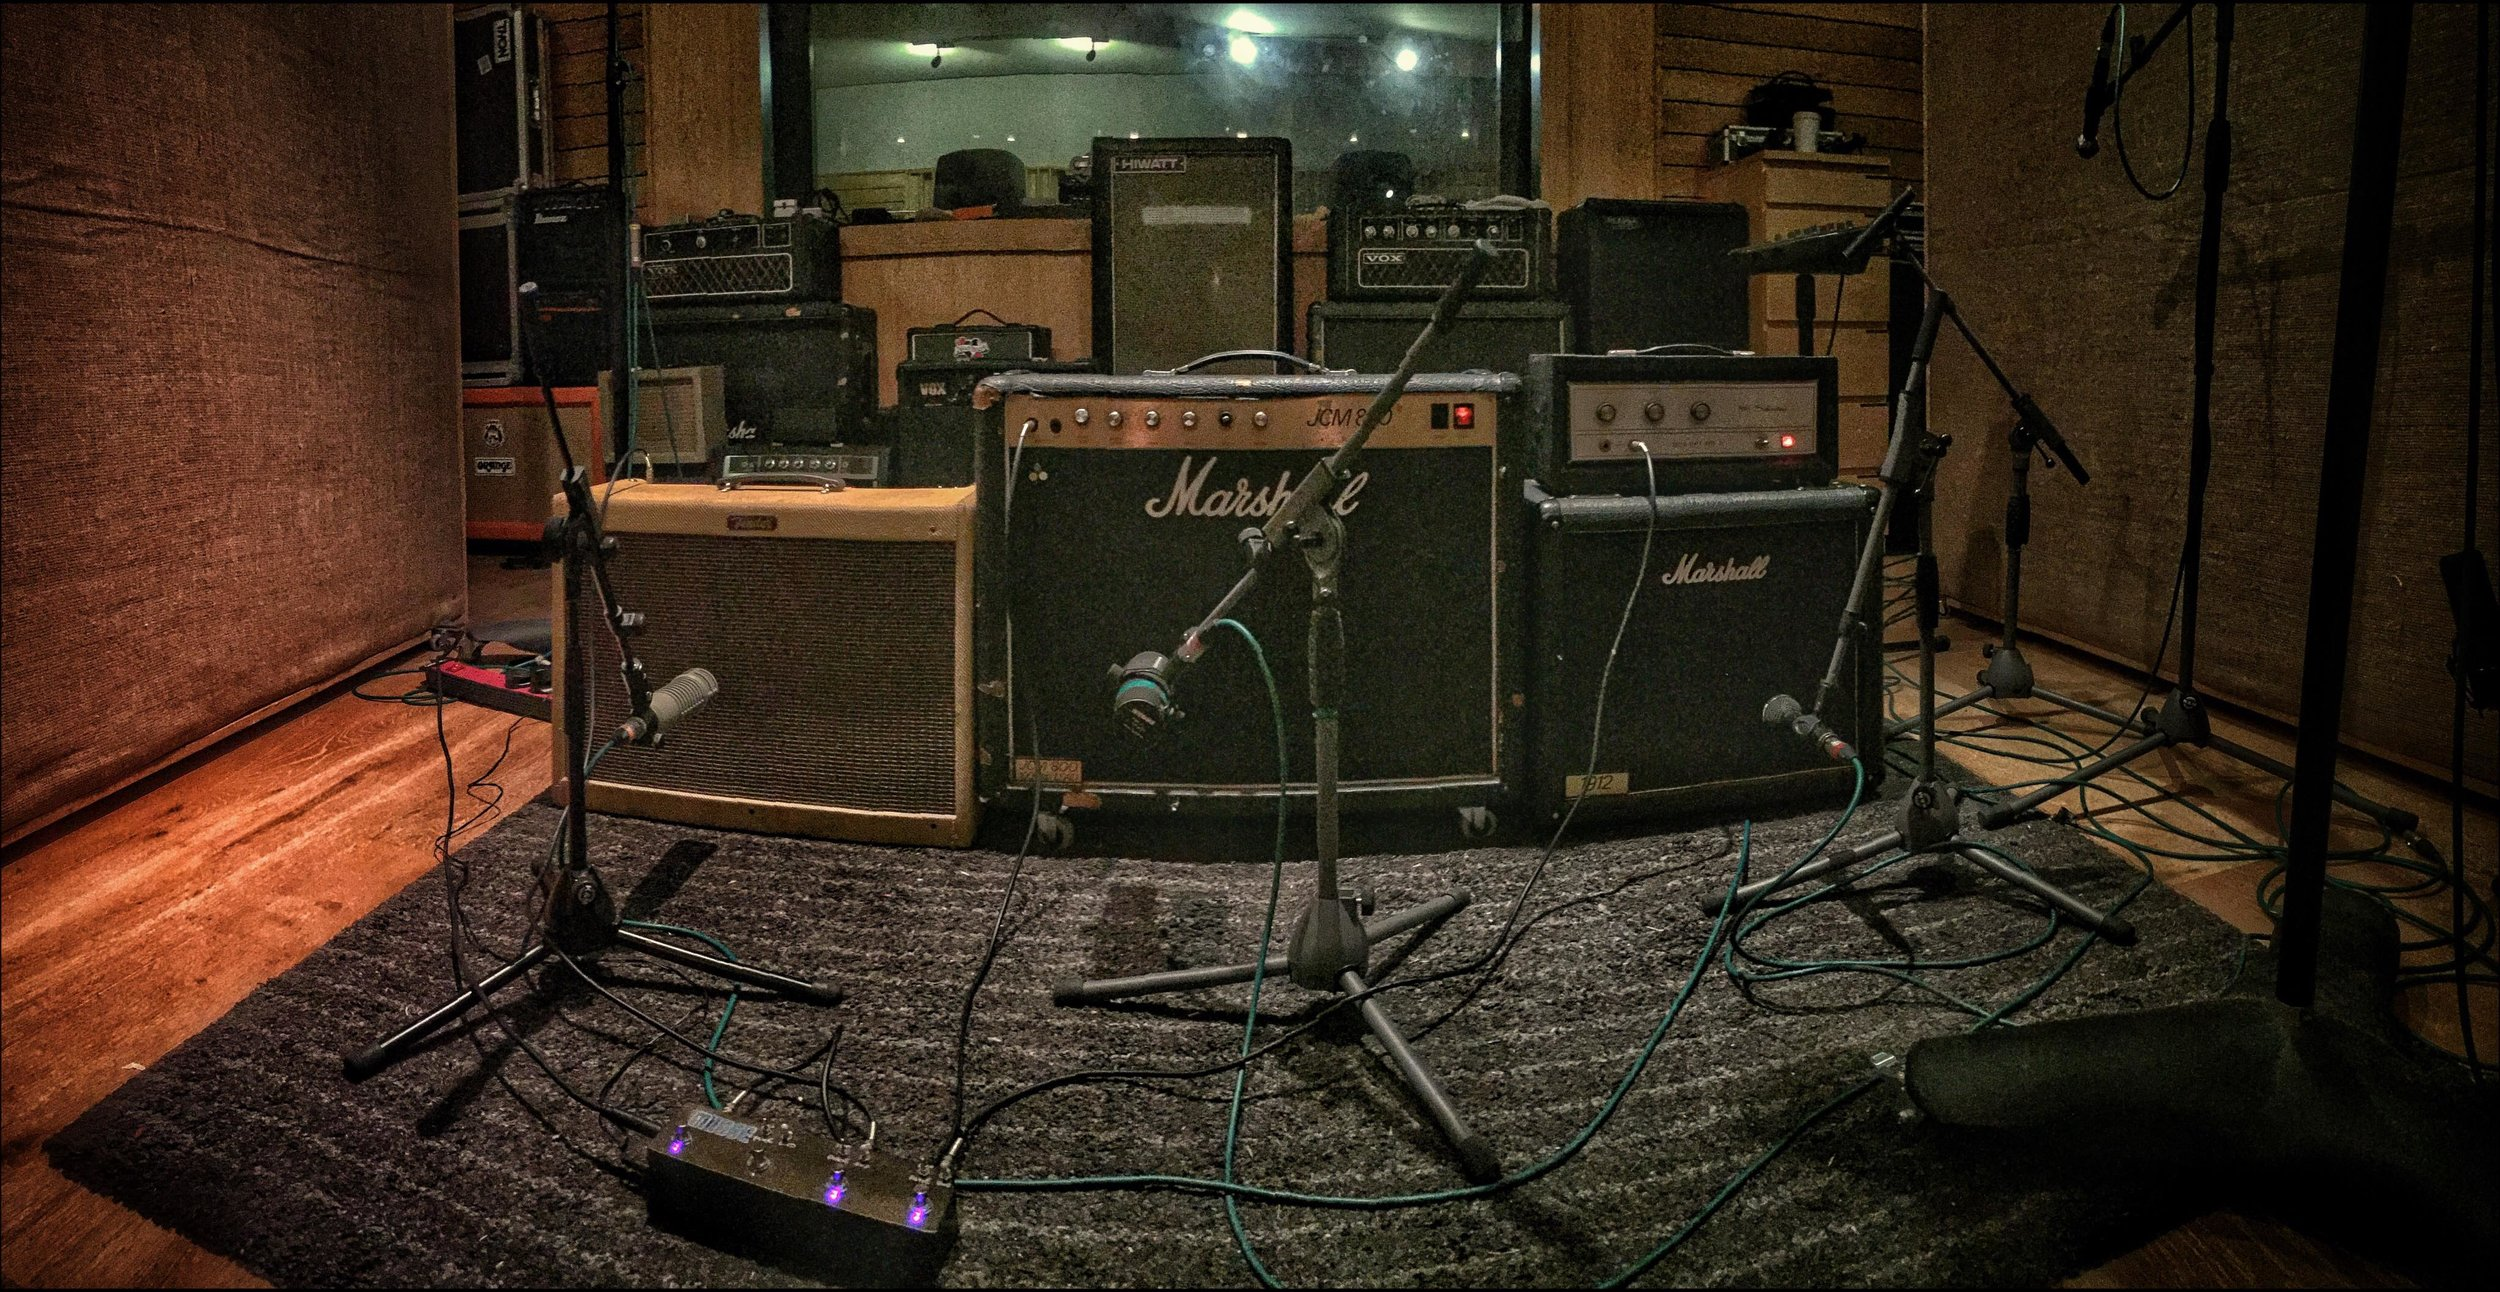 Rhythm Wall - Fender Blues Deluxe / Marshall JCM 800 / Silvertone SS Bass 30 & Marshall 1912